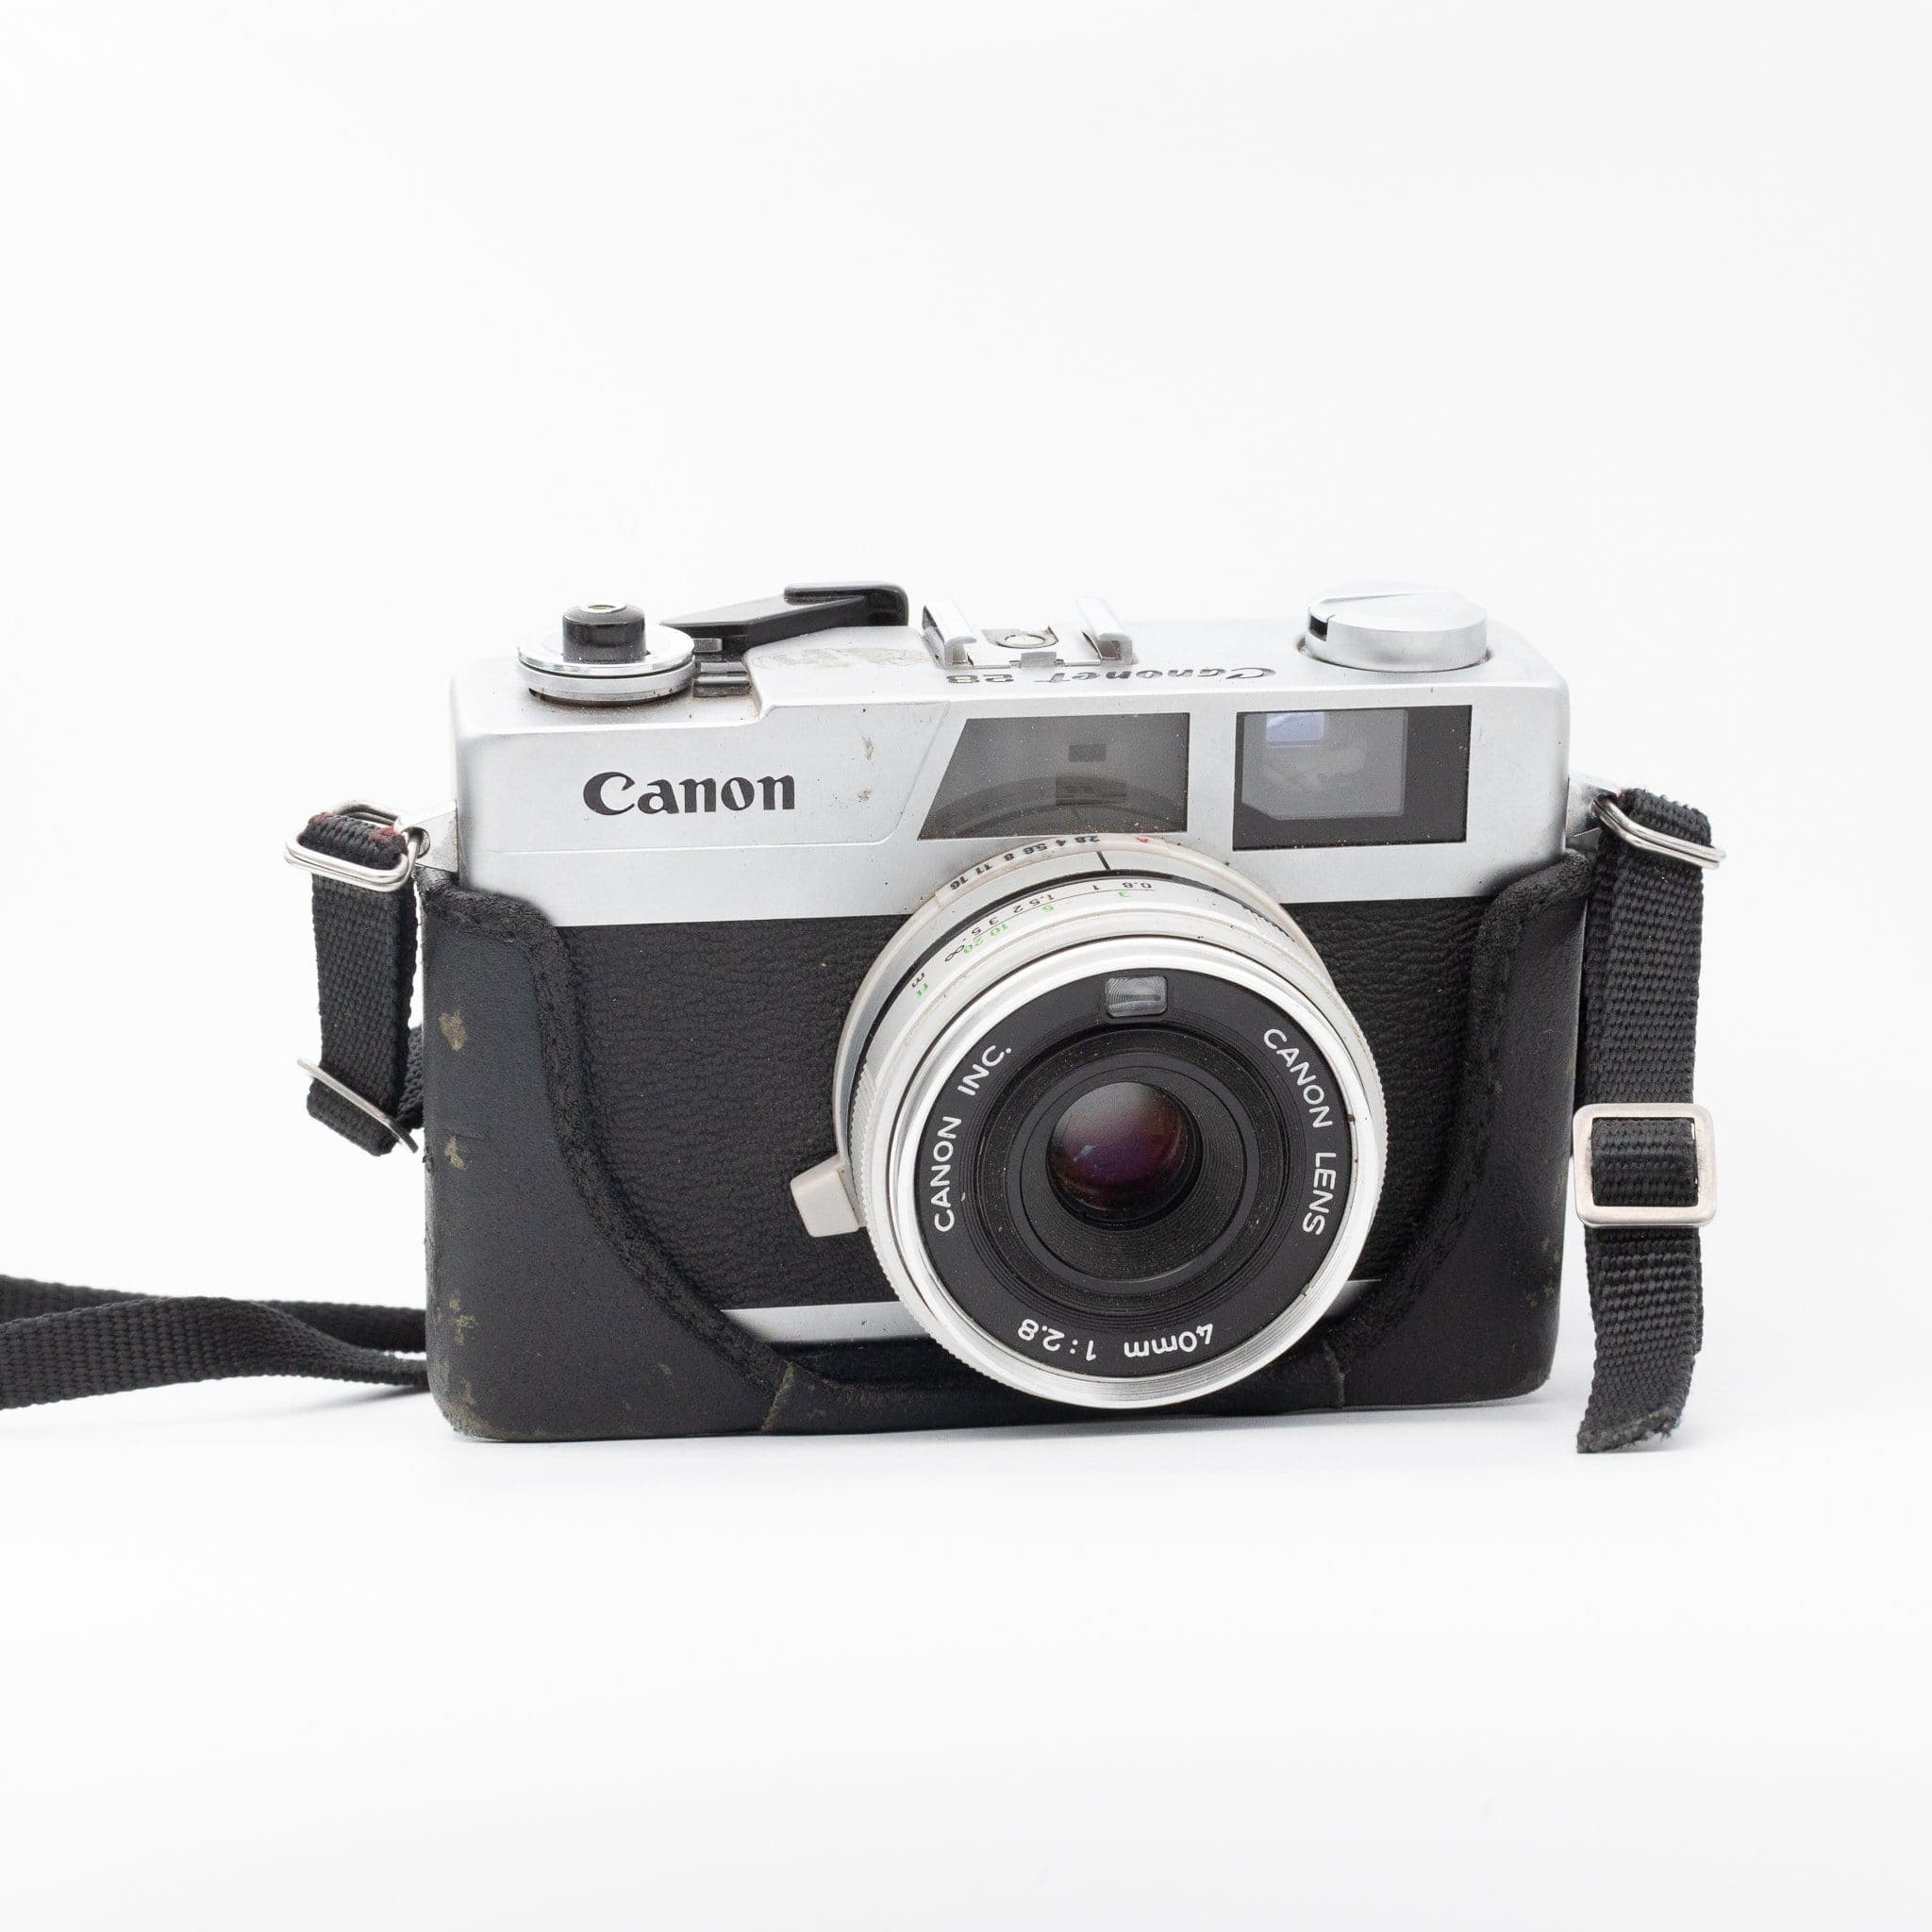 Canon Canonet 28 with 40mm f/2.8 with leather case